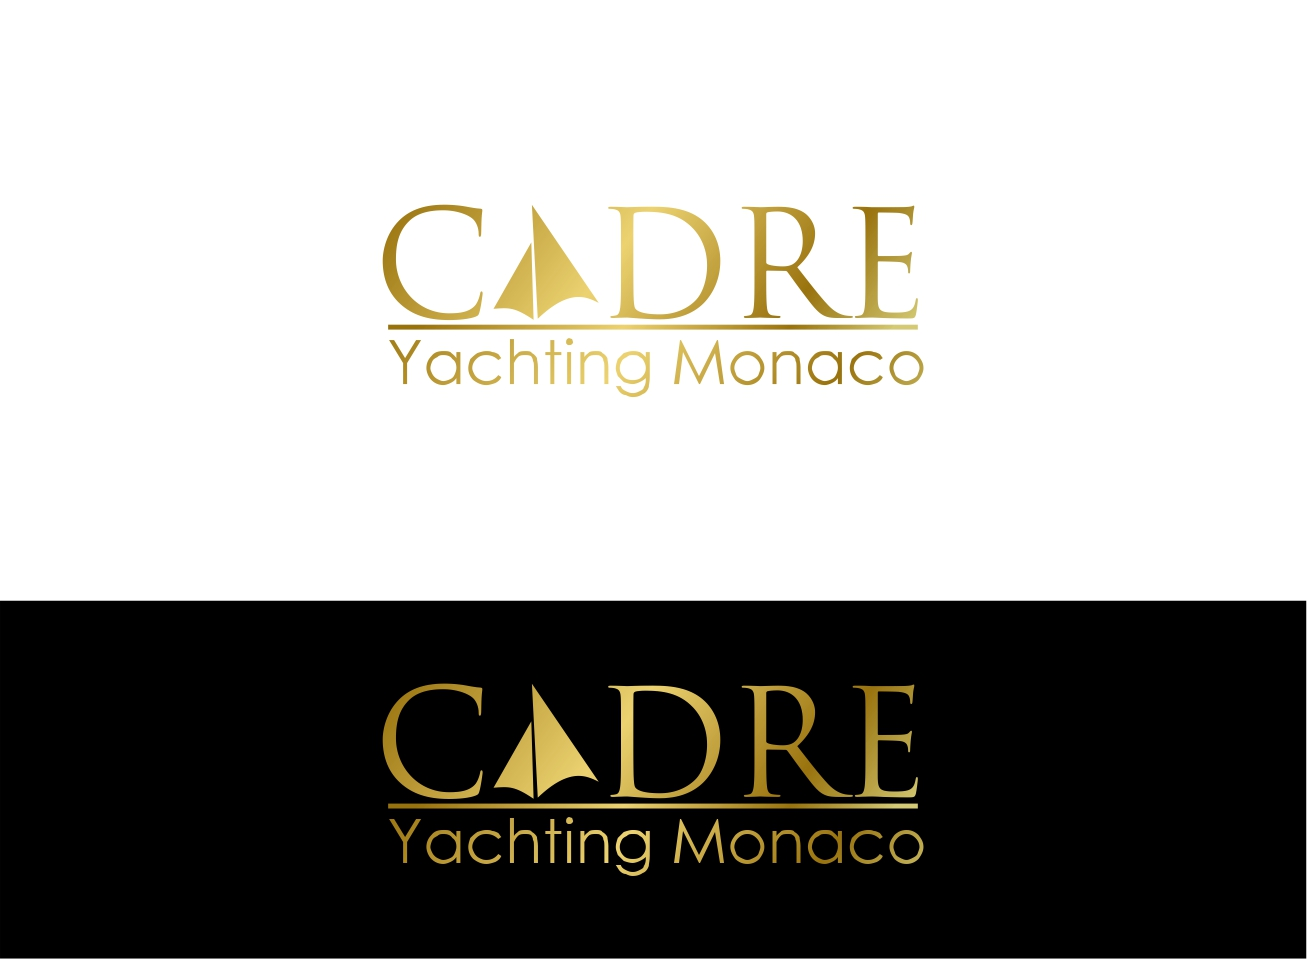 Logo Design by dzoker - Entry No. 362 in the Logo Design Contest New Logo Design for Cadre Yachting Monaco.